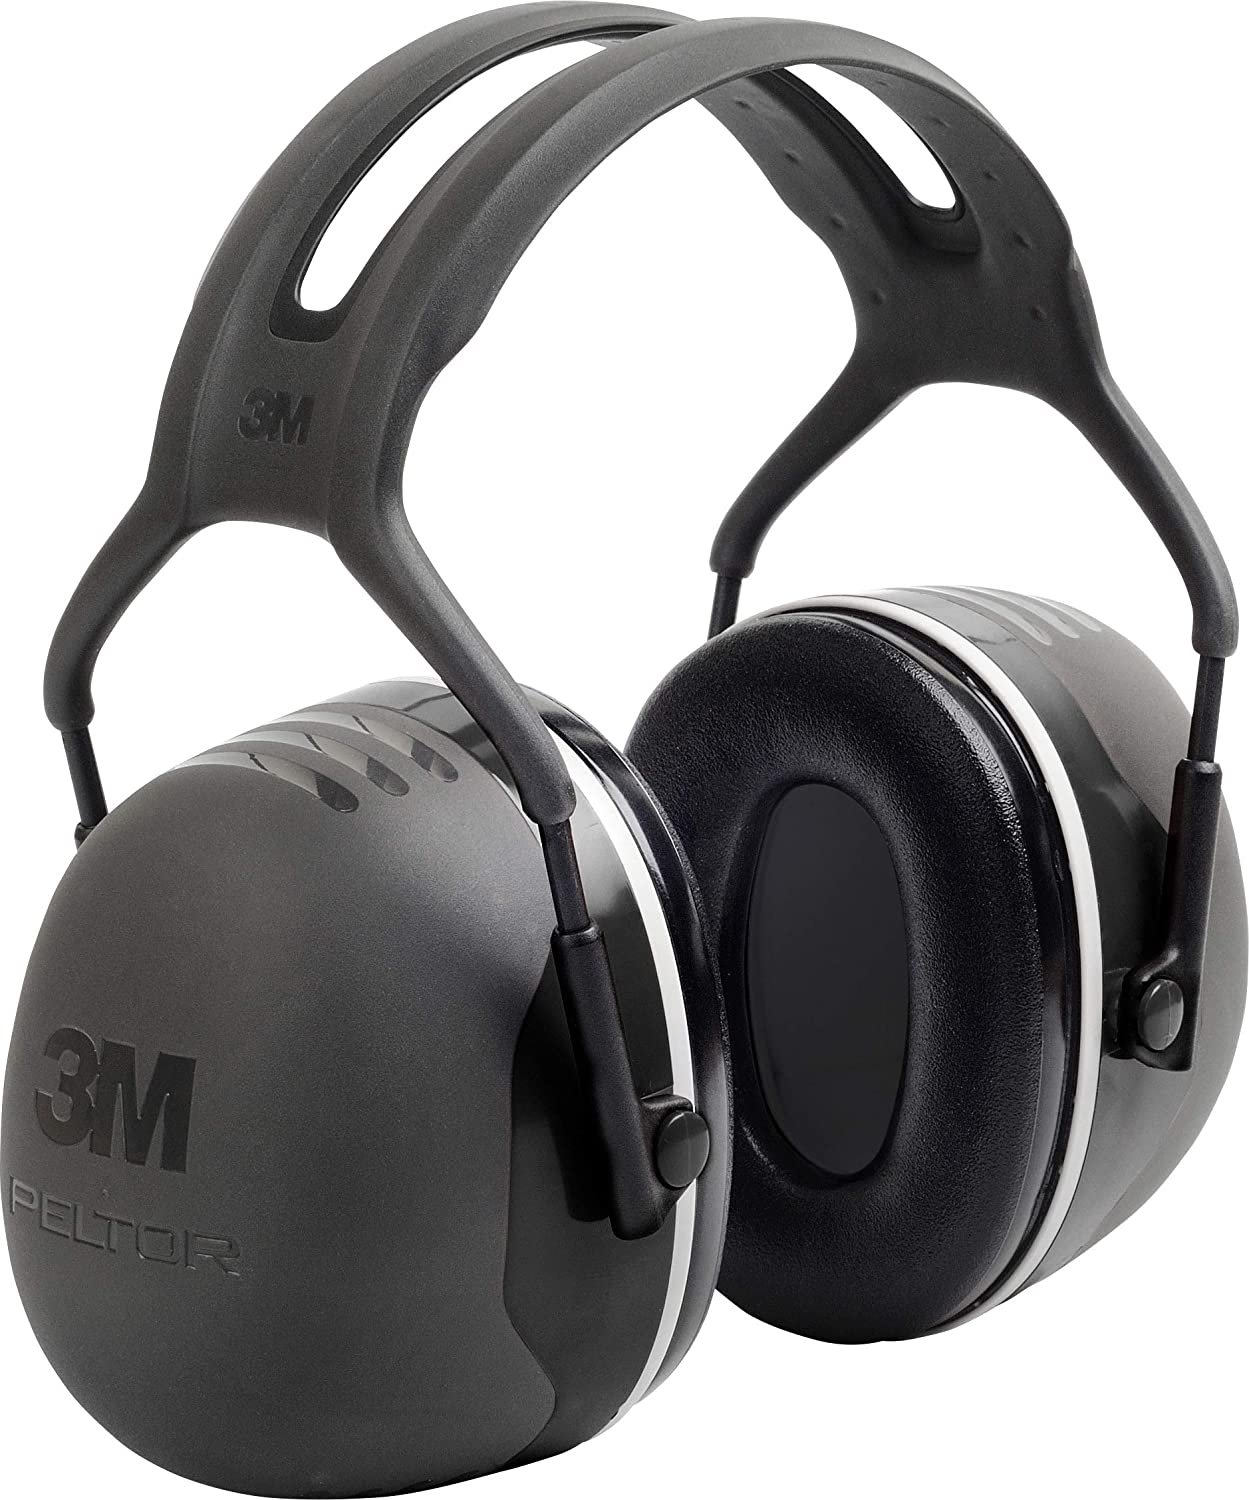 3M PELTOR X5A Over-the-Head Ear Muffs, Noise Protection, NRR 31 dB